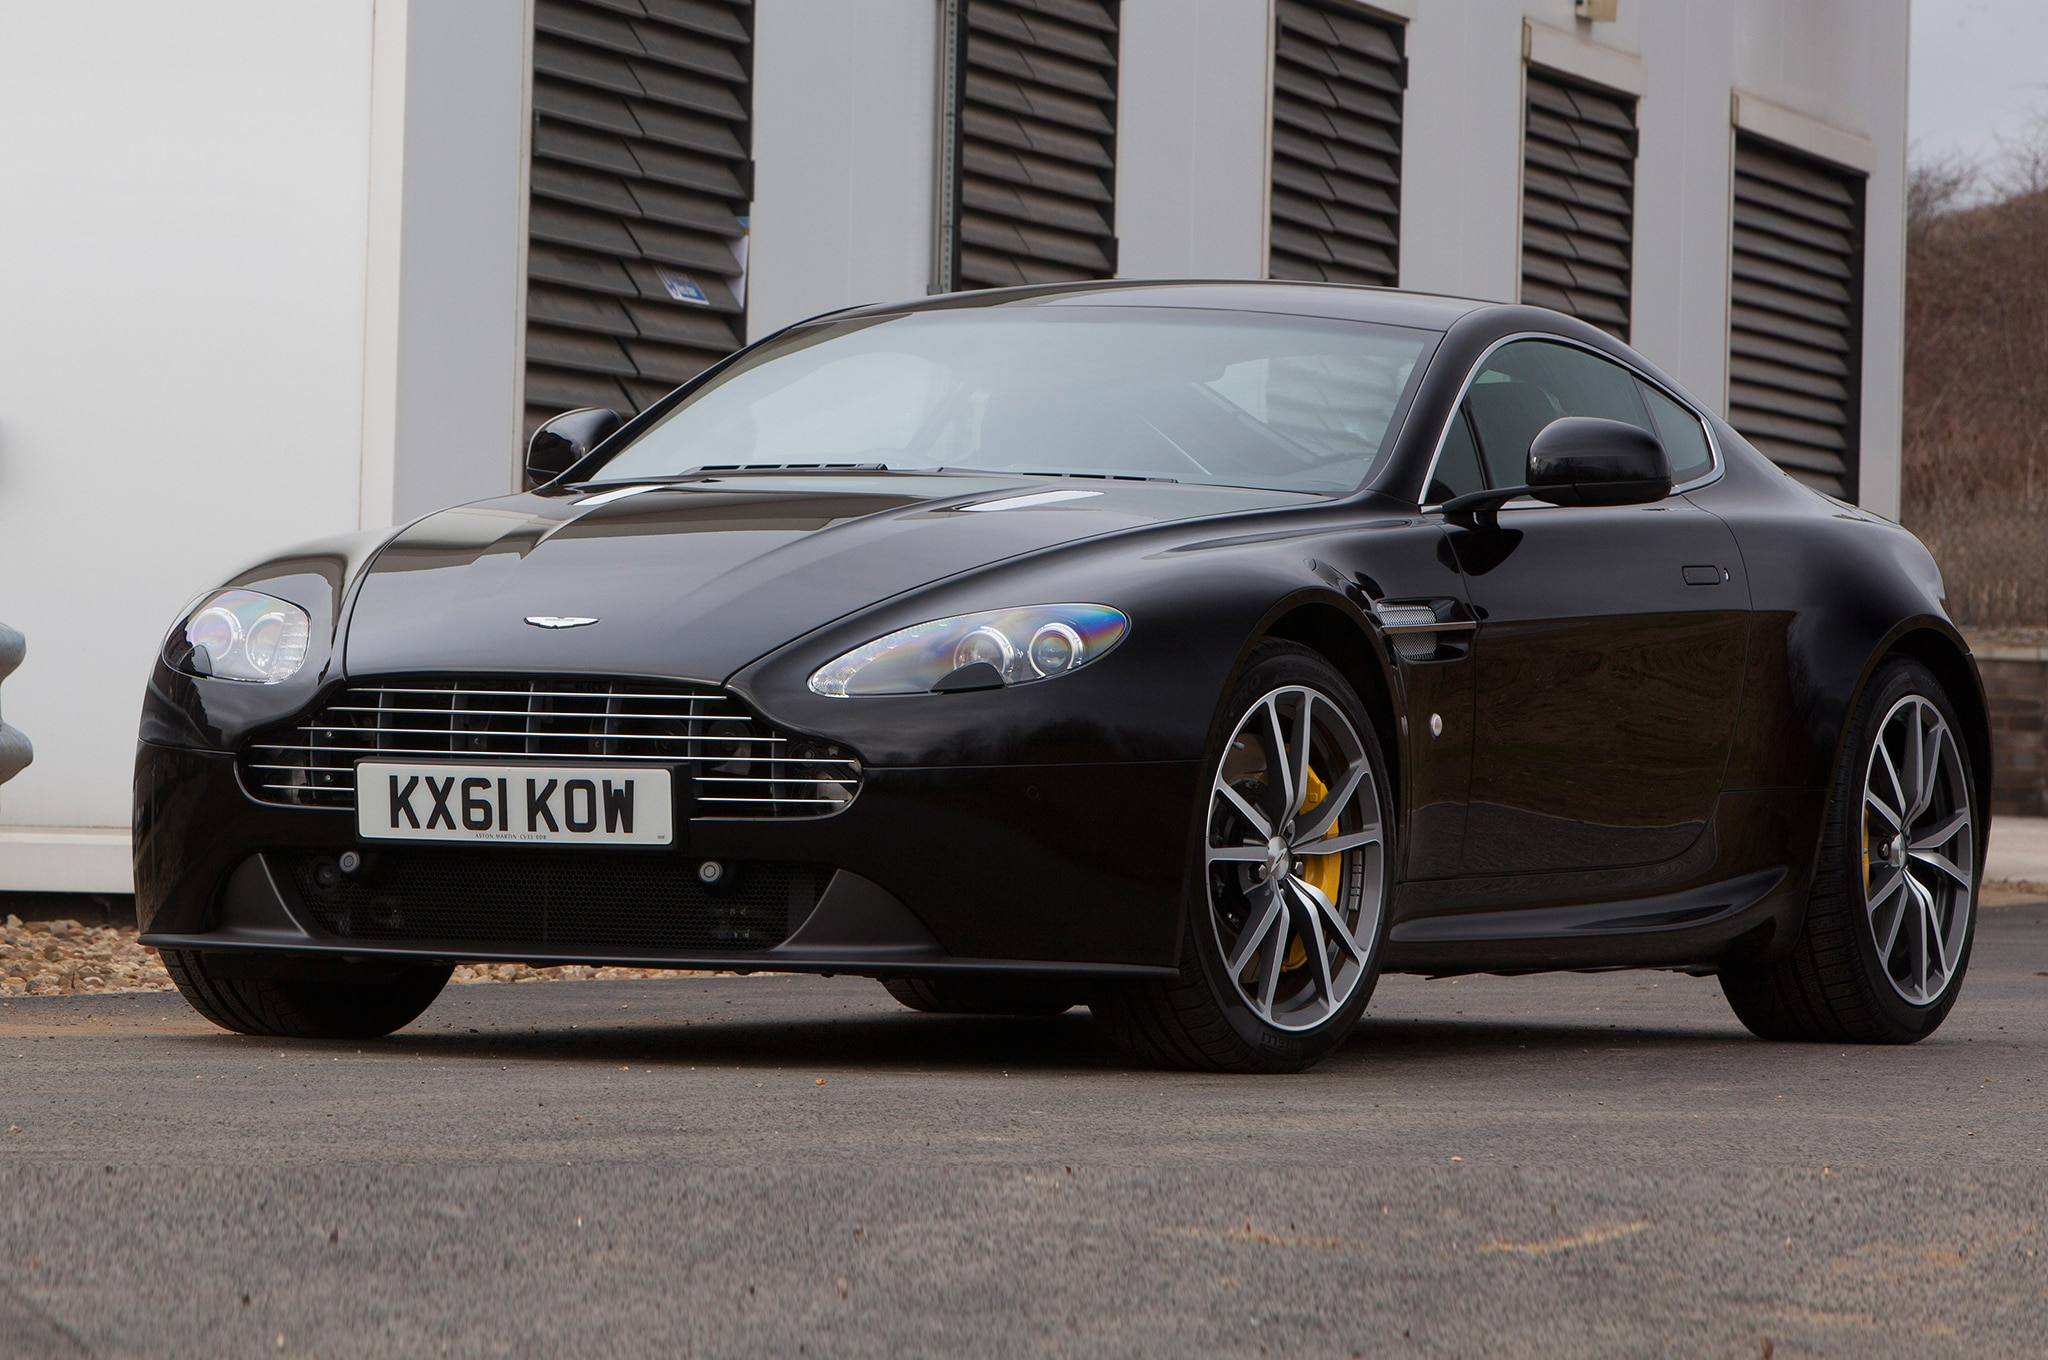 aston martin debuts v8 vantage n430 db9 carbon special editions at 2014 geneva auto show. Black Bedroom Furniture Sets. Home Design Ideas